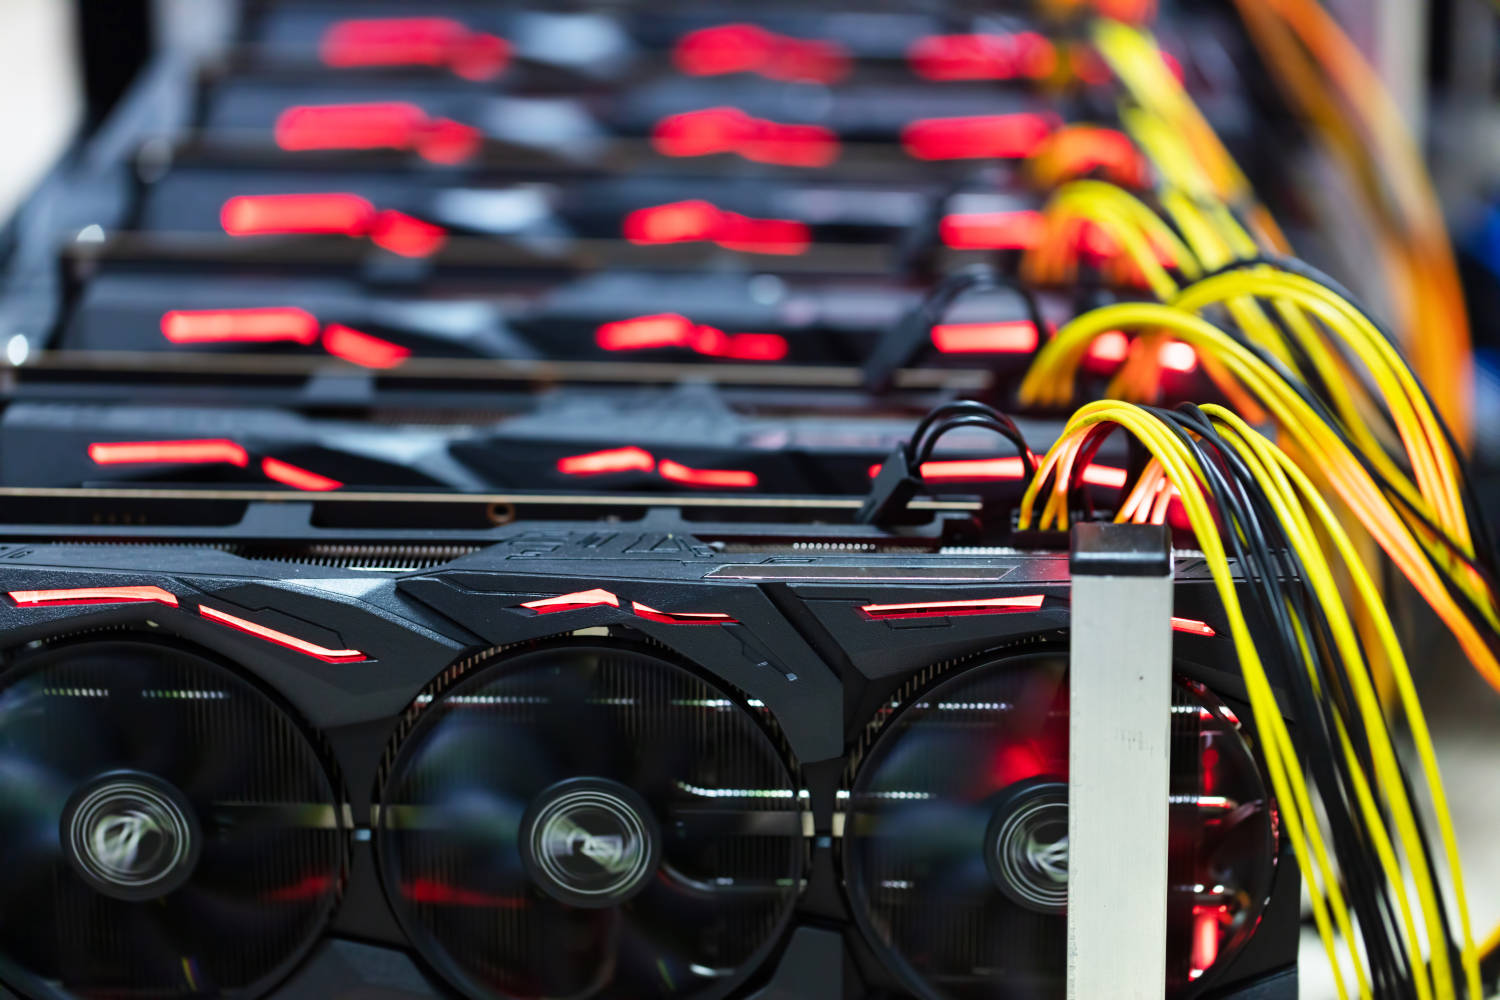 Celsius Invests $200 Million in North American Bitcoin Mining